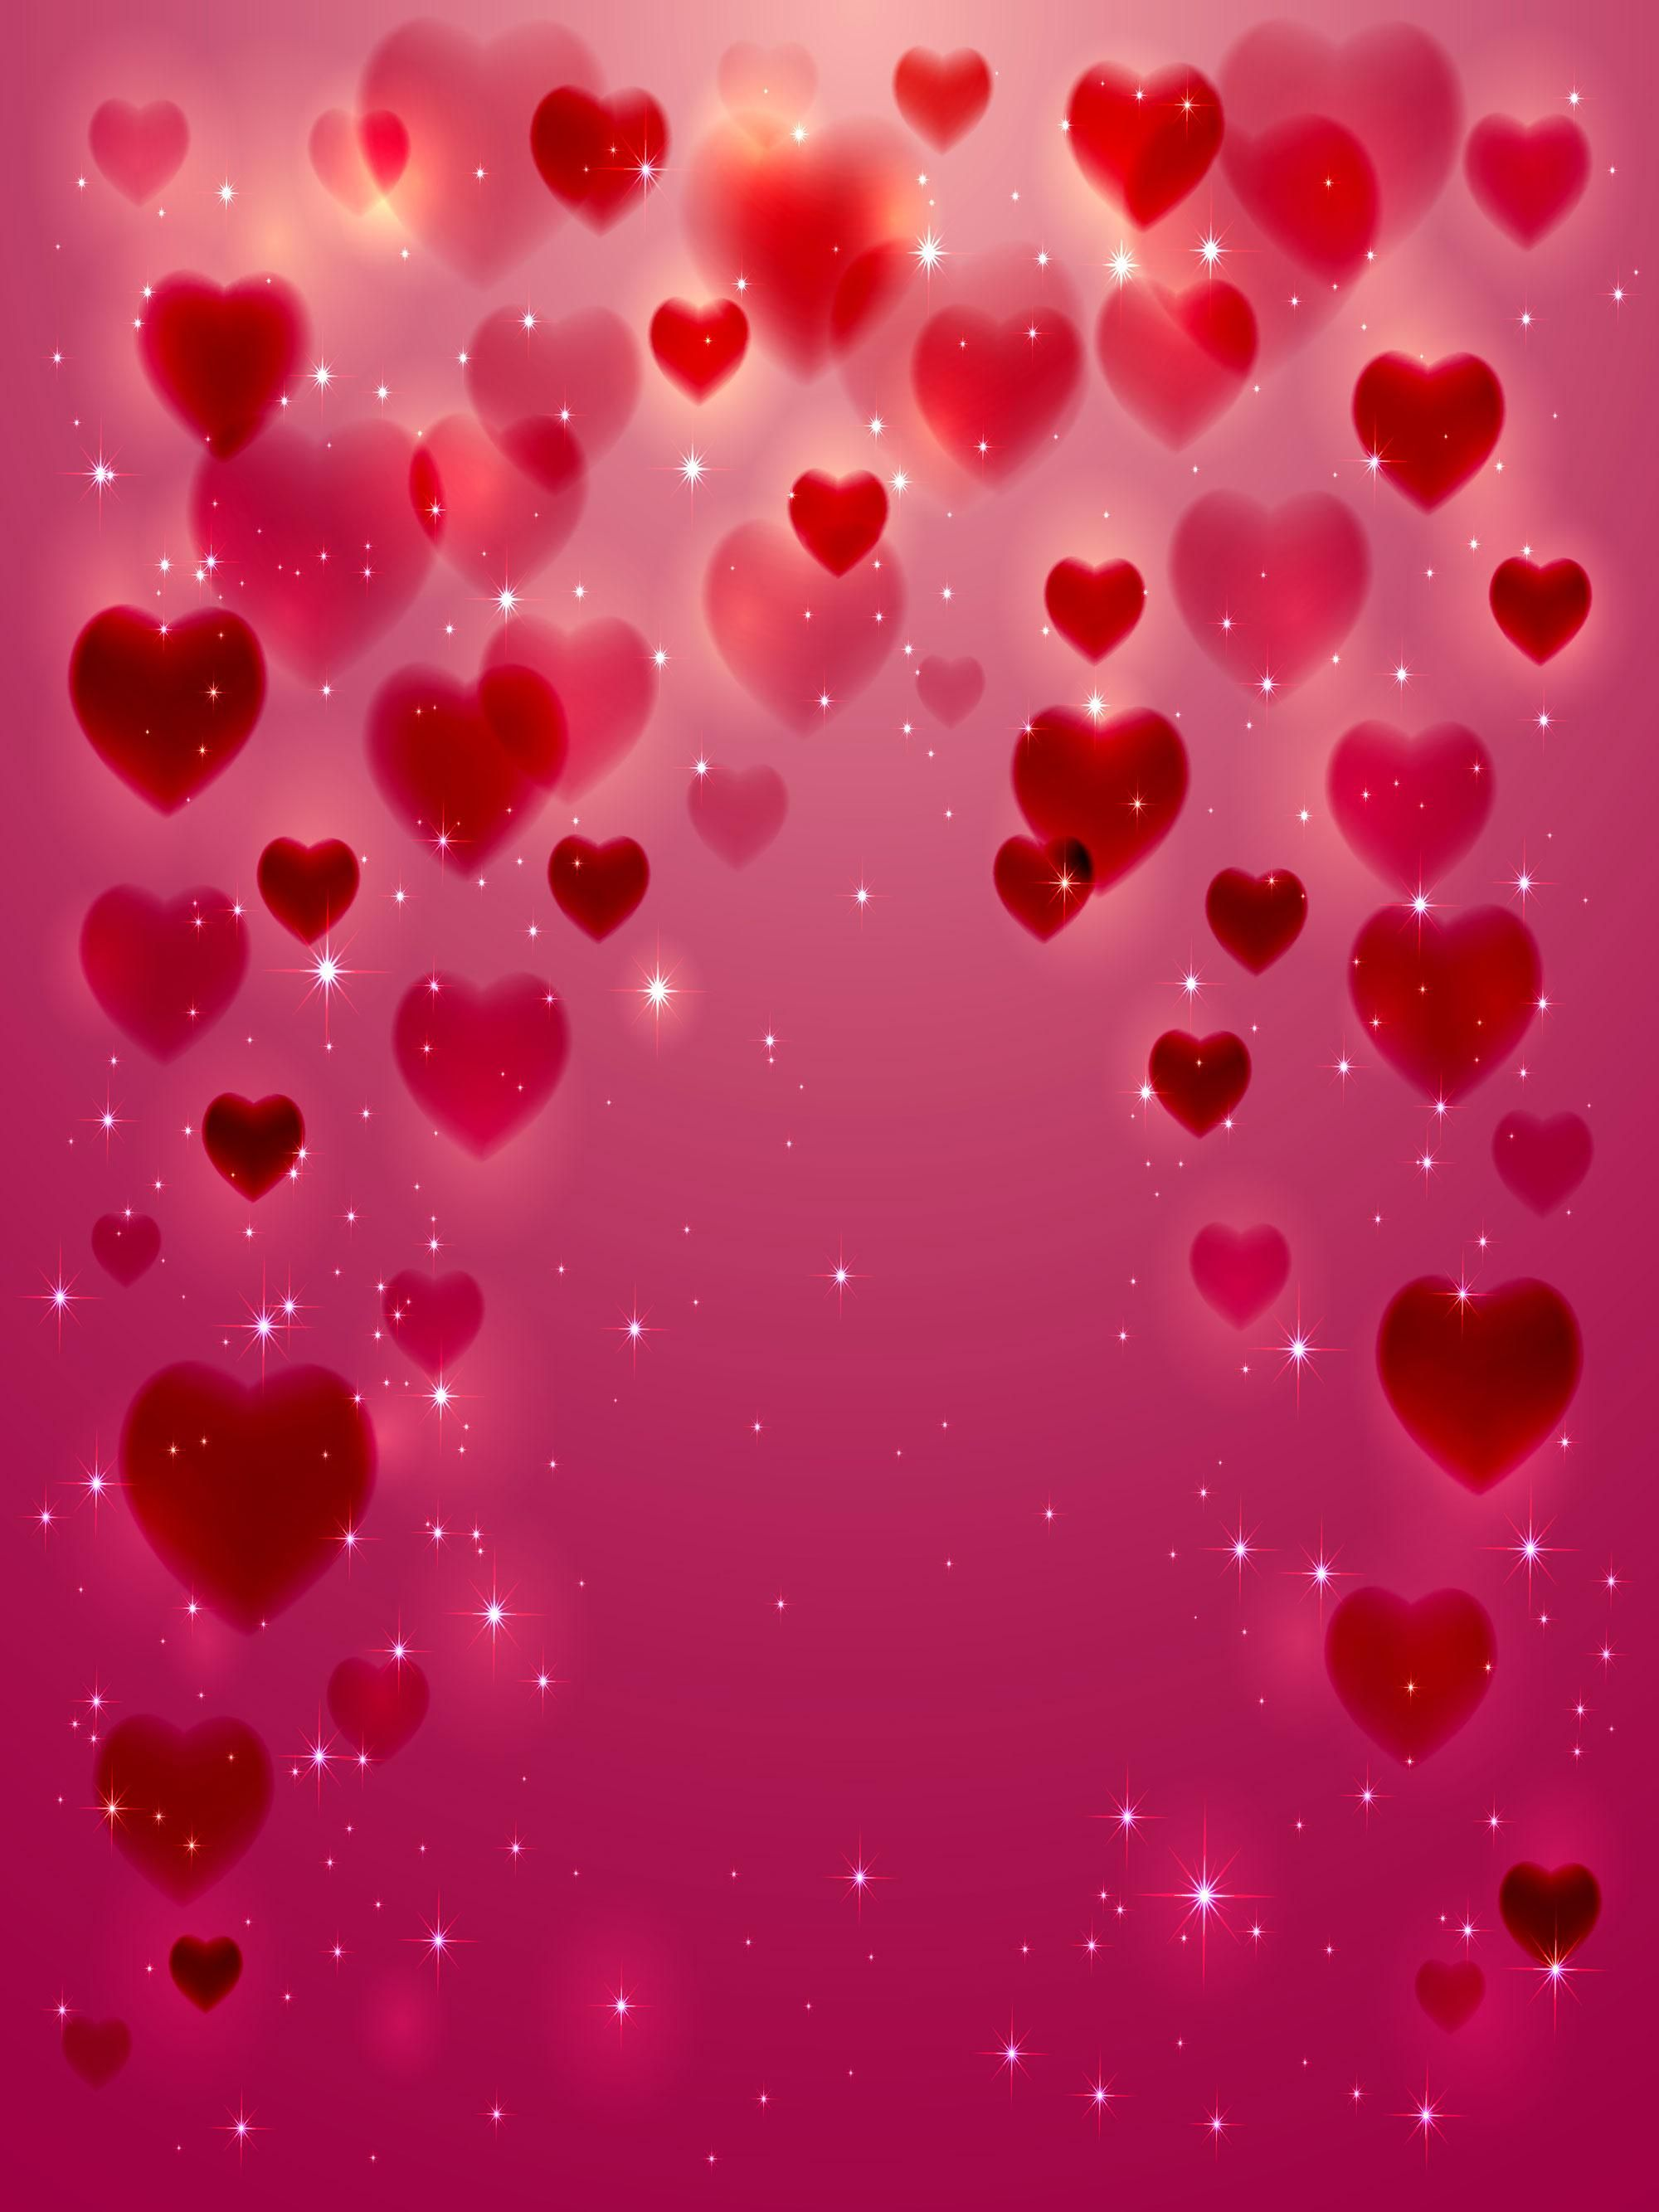 2021 Valentines Day Blurry Hearts Vinyl Photography Backdrops Shiny Romantic Pink Photo Booth Backgrounds For Wedding Studio Props From Lvyue2019 20 05 Dhga Valentines Wallpaper Valentines Day Background Heart Wallpaper